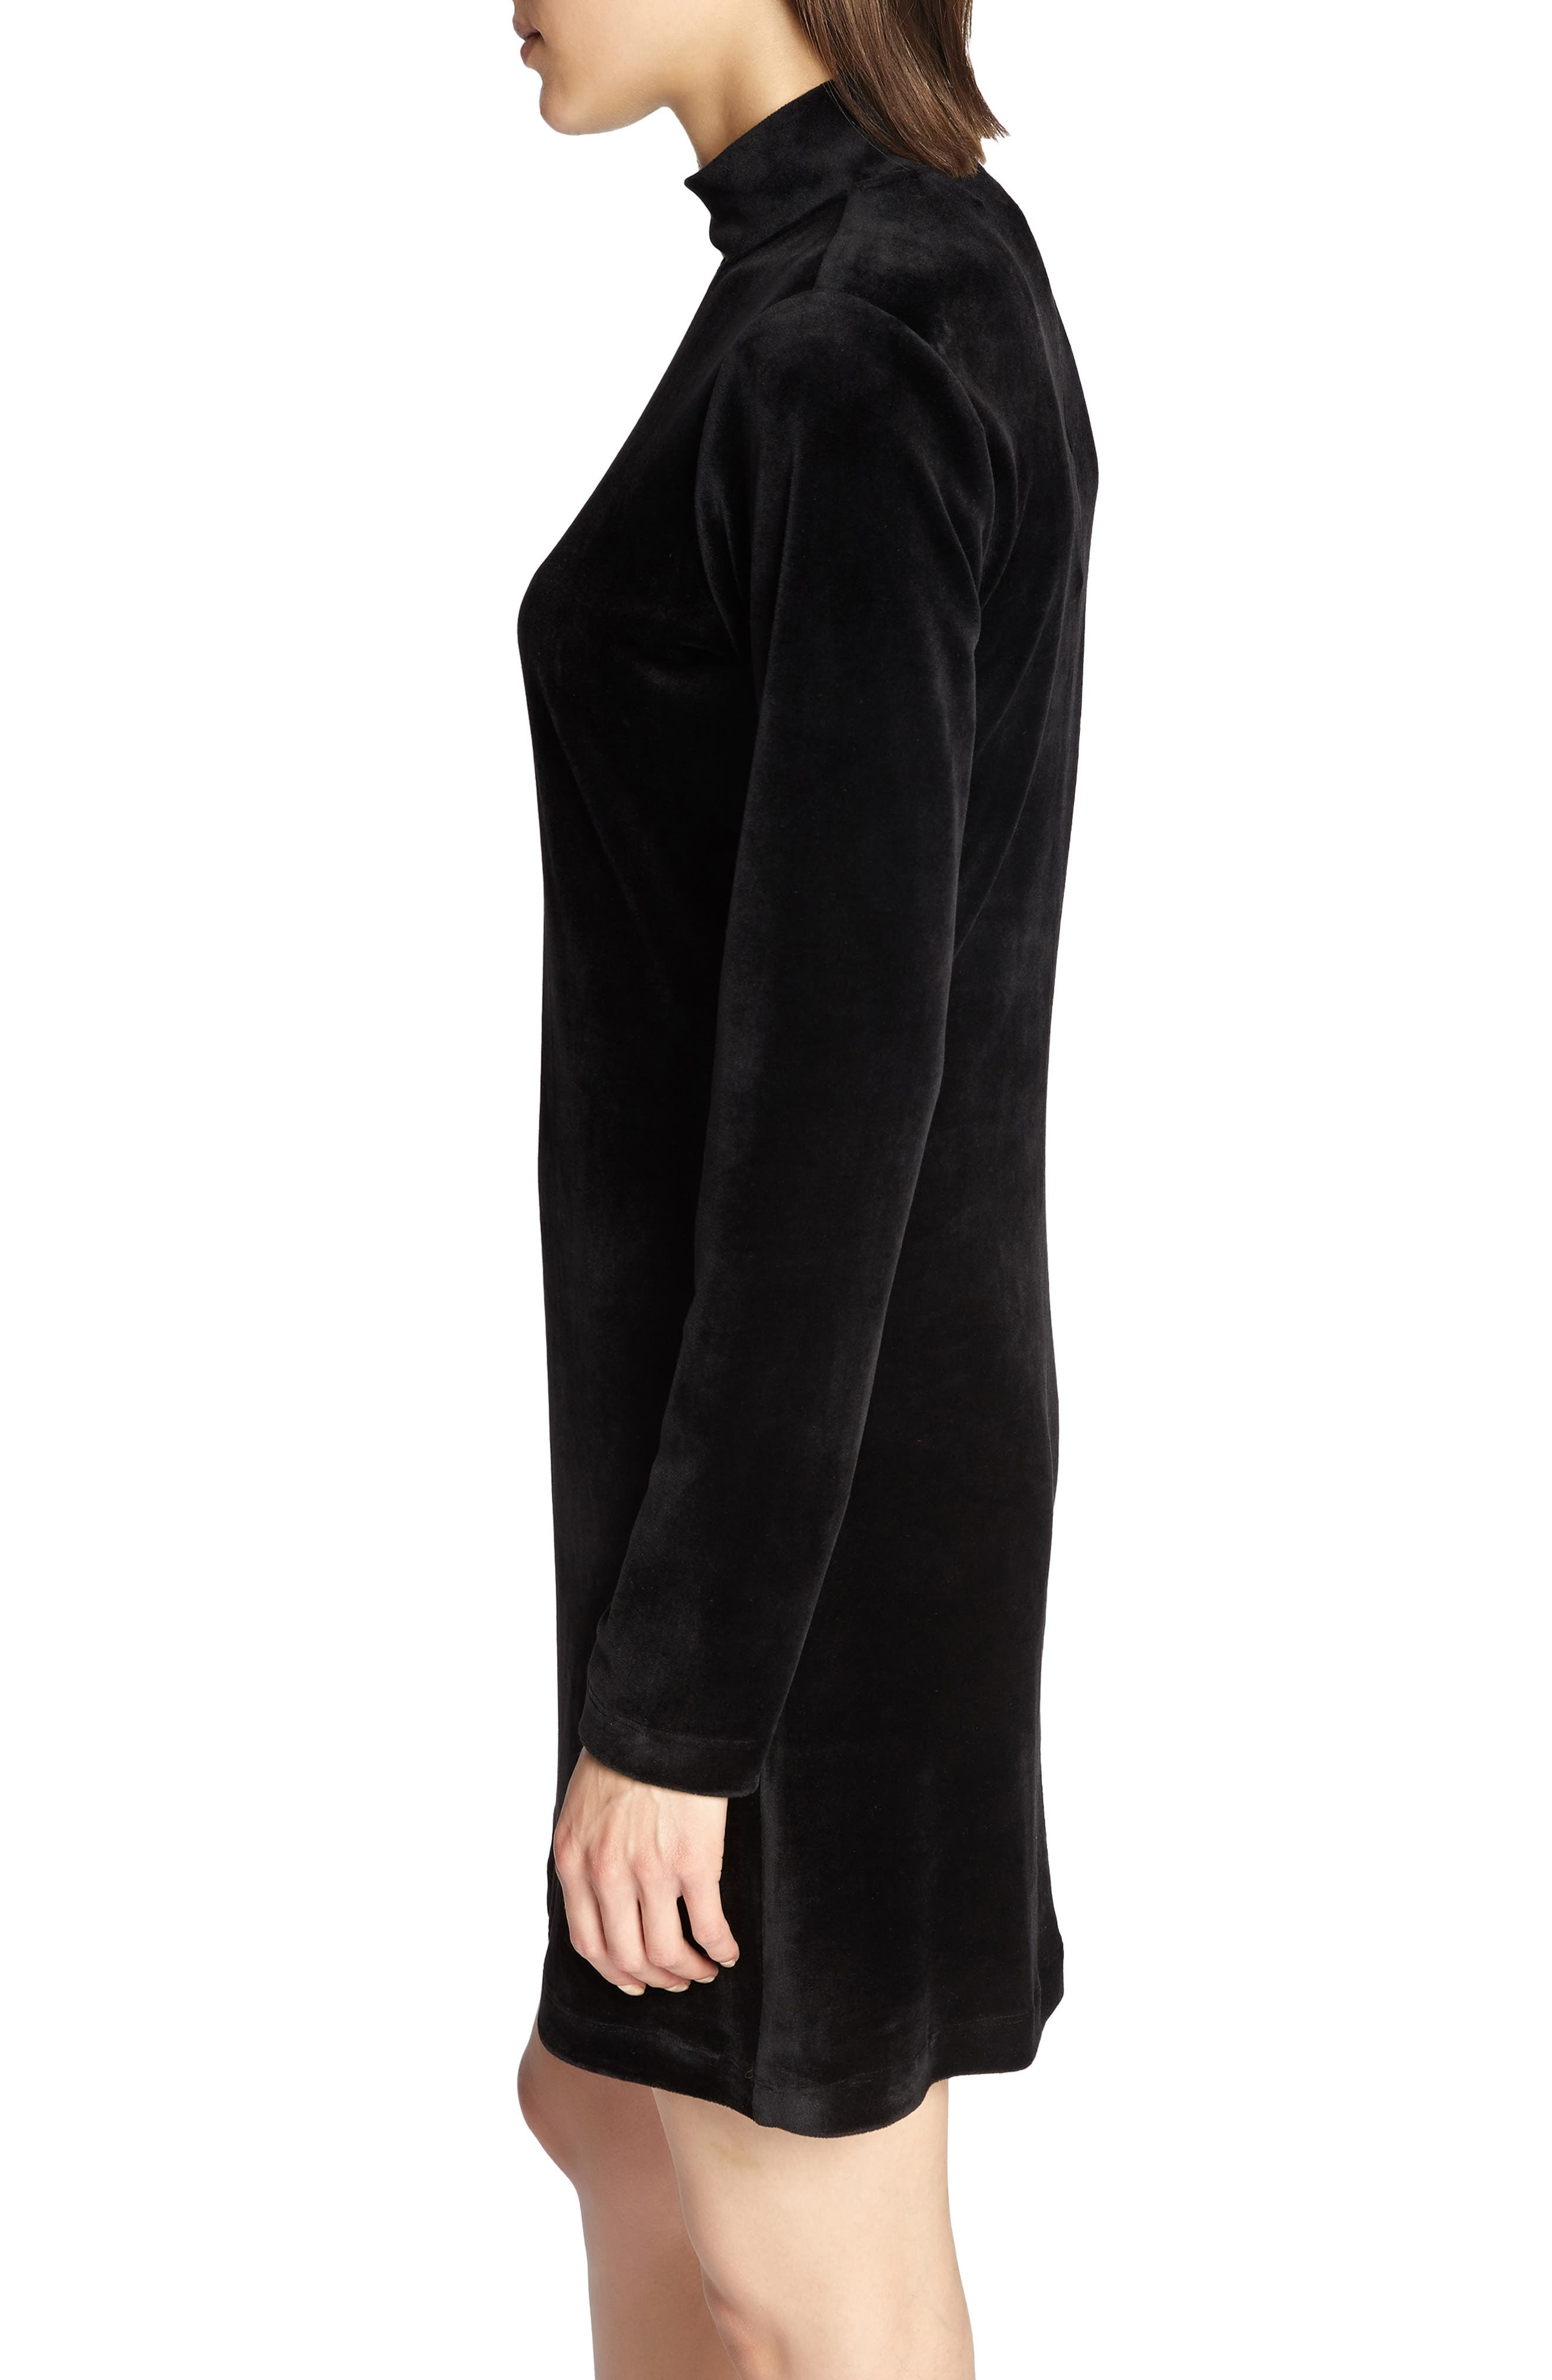 Endless Night Velour Dress,                             Alternate thumbnail 3, color,                             BLACK